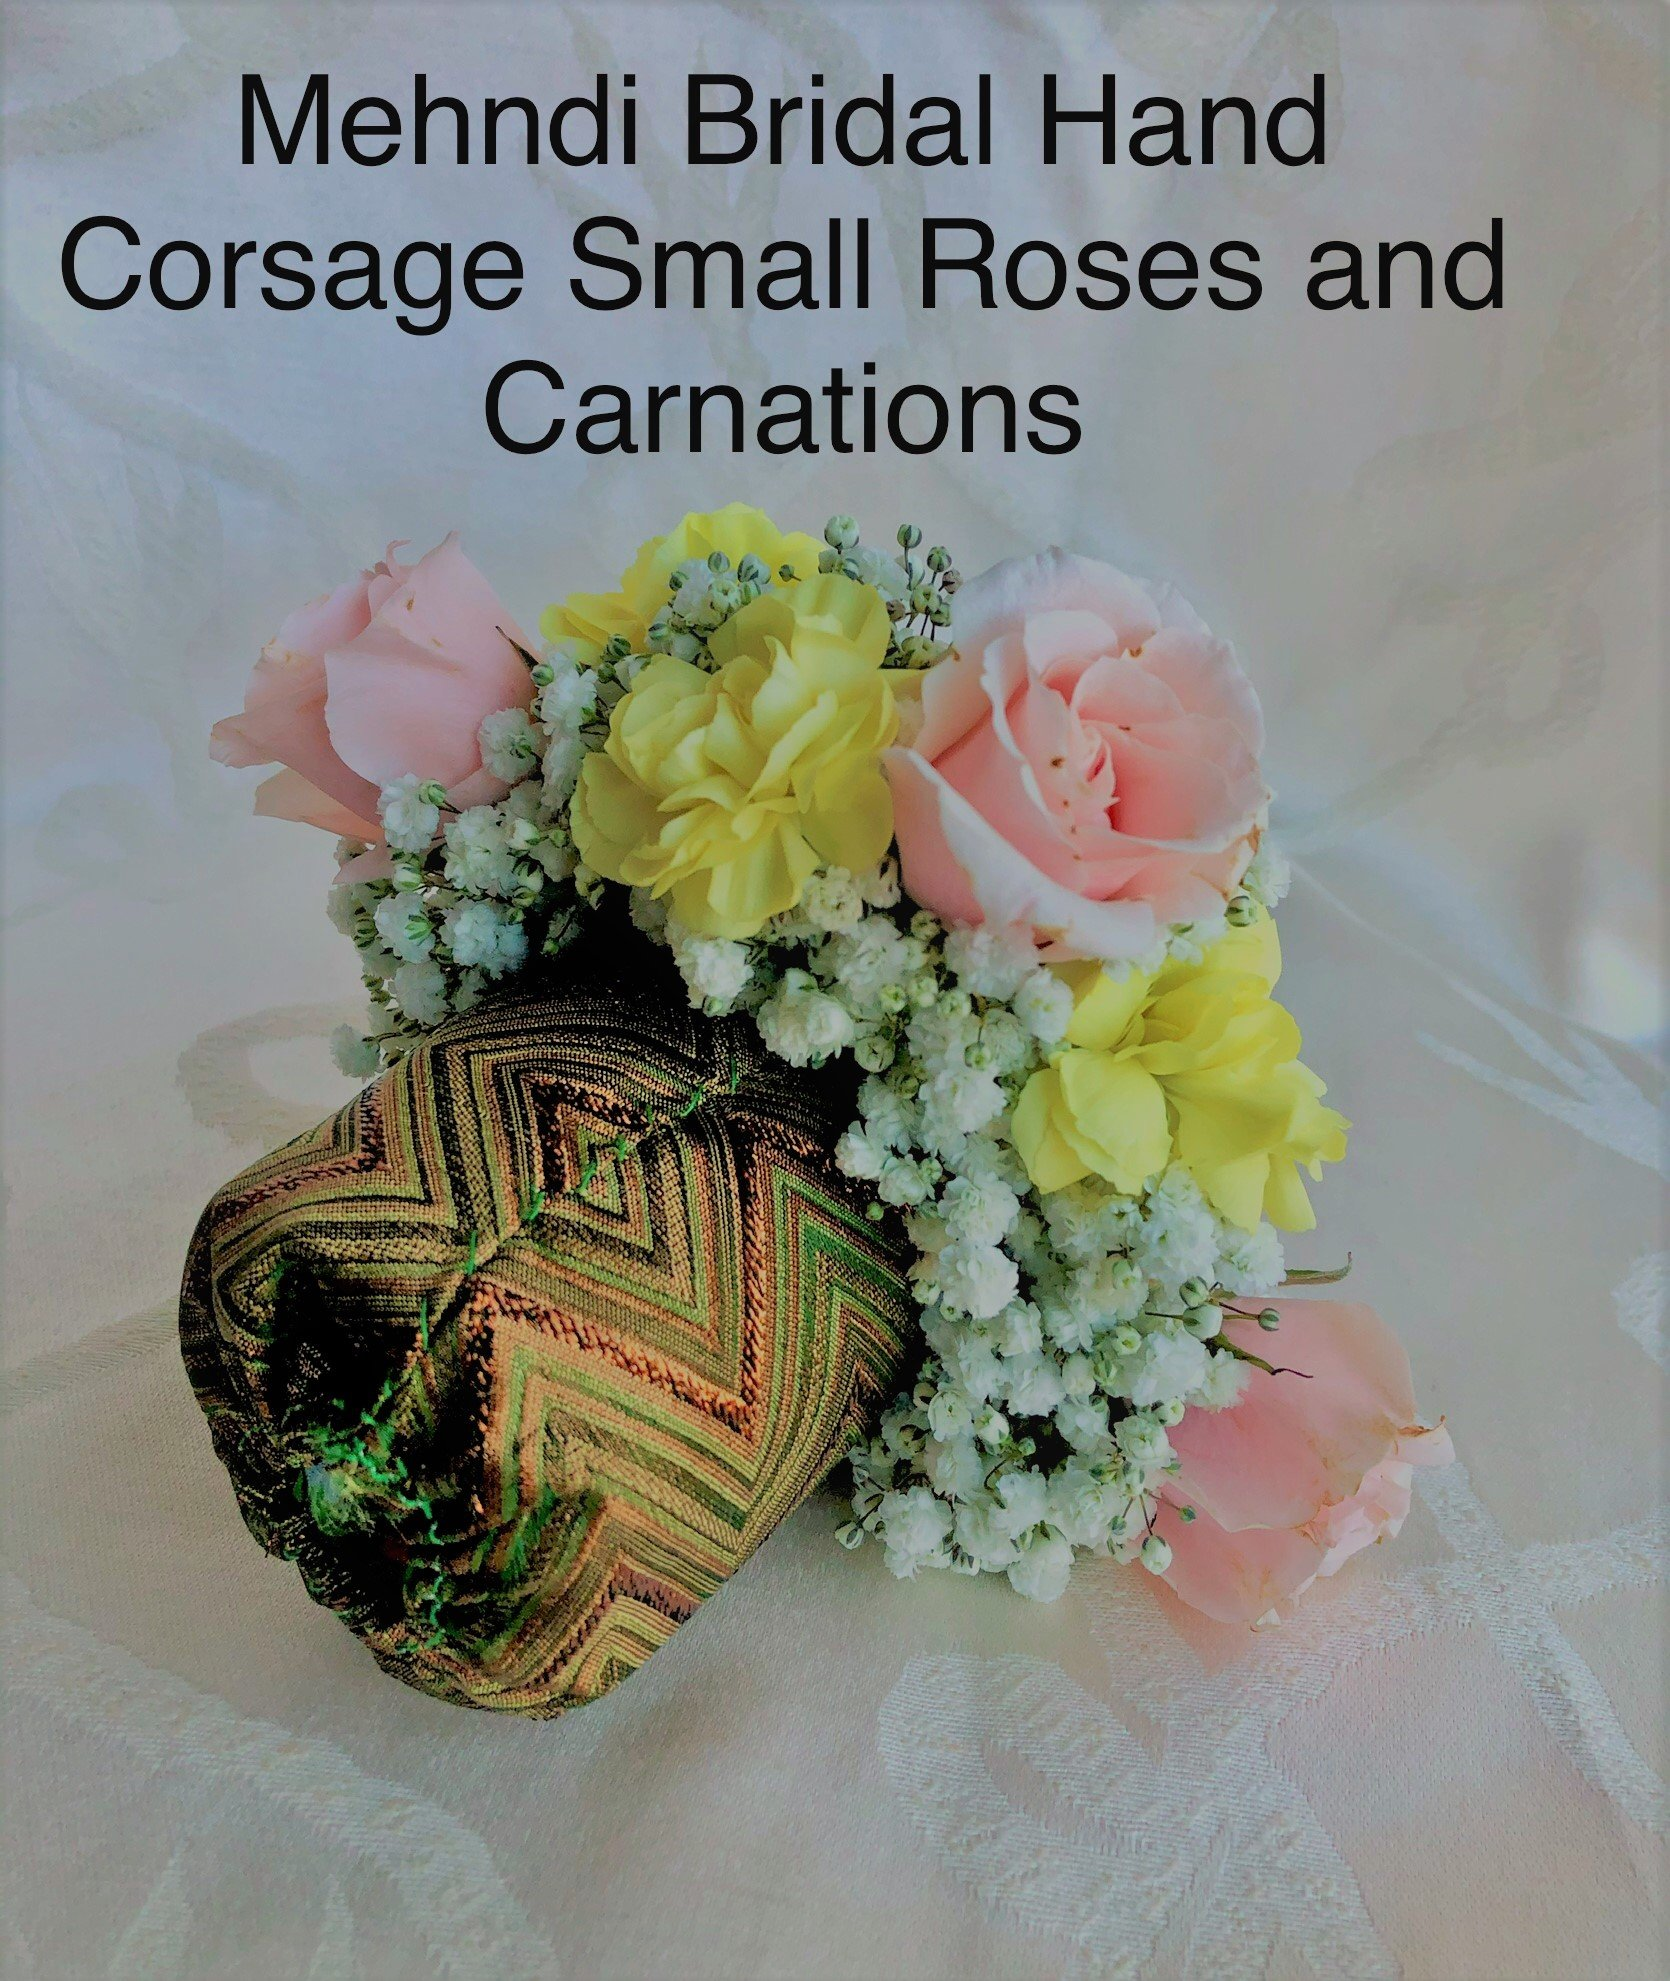 Bridal Mehndi Hand Corsage Small Roses and Carnations